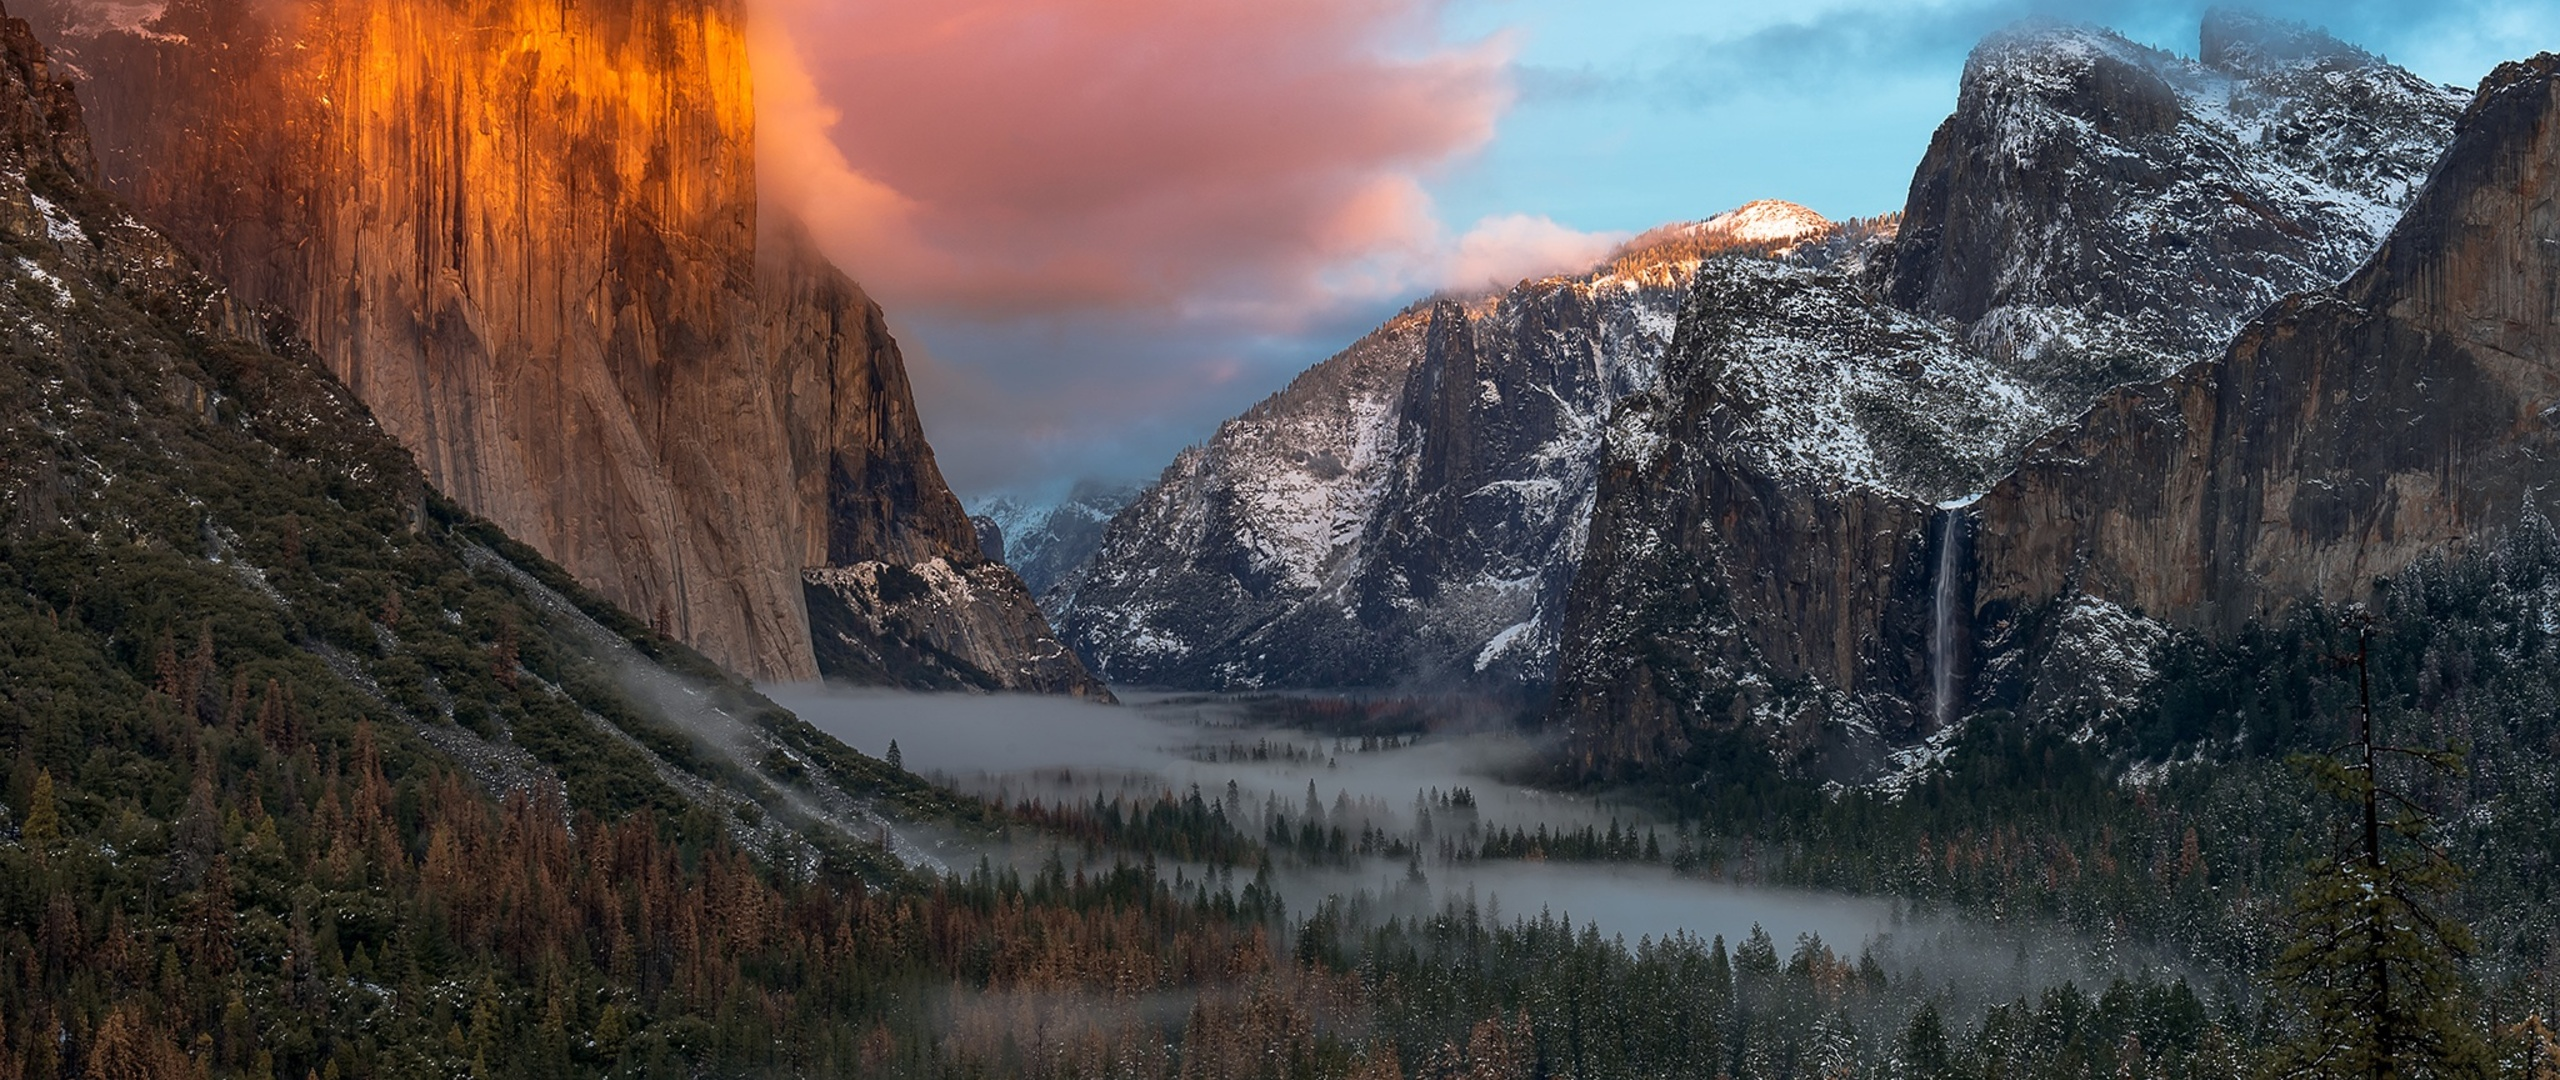 2560x1080 yosemite national park beautiful 2560x1080 - Yosemite national park hd wallpaper ...